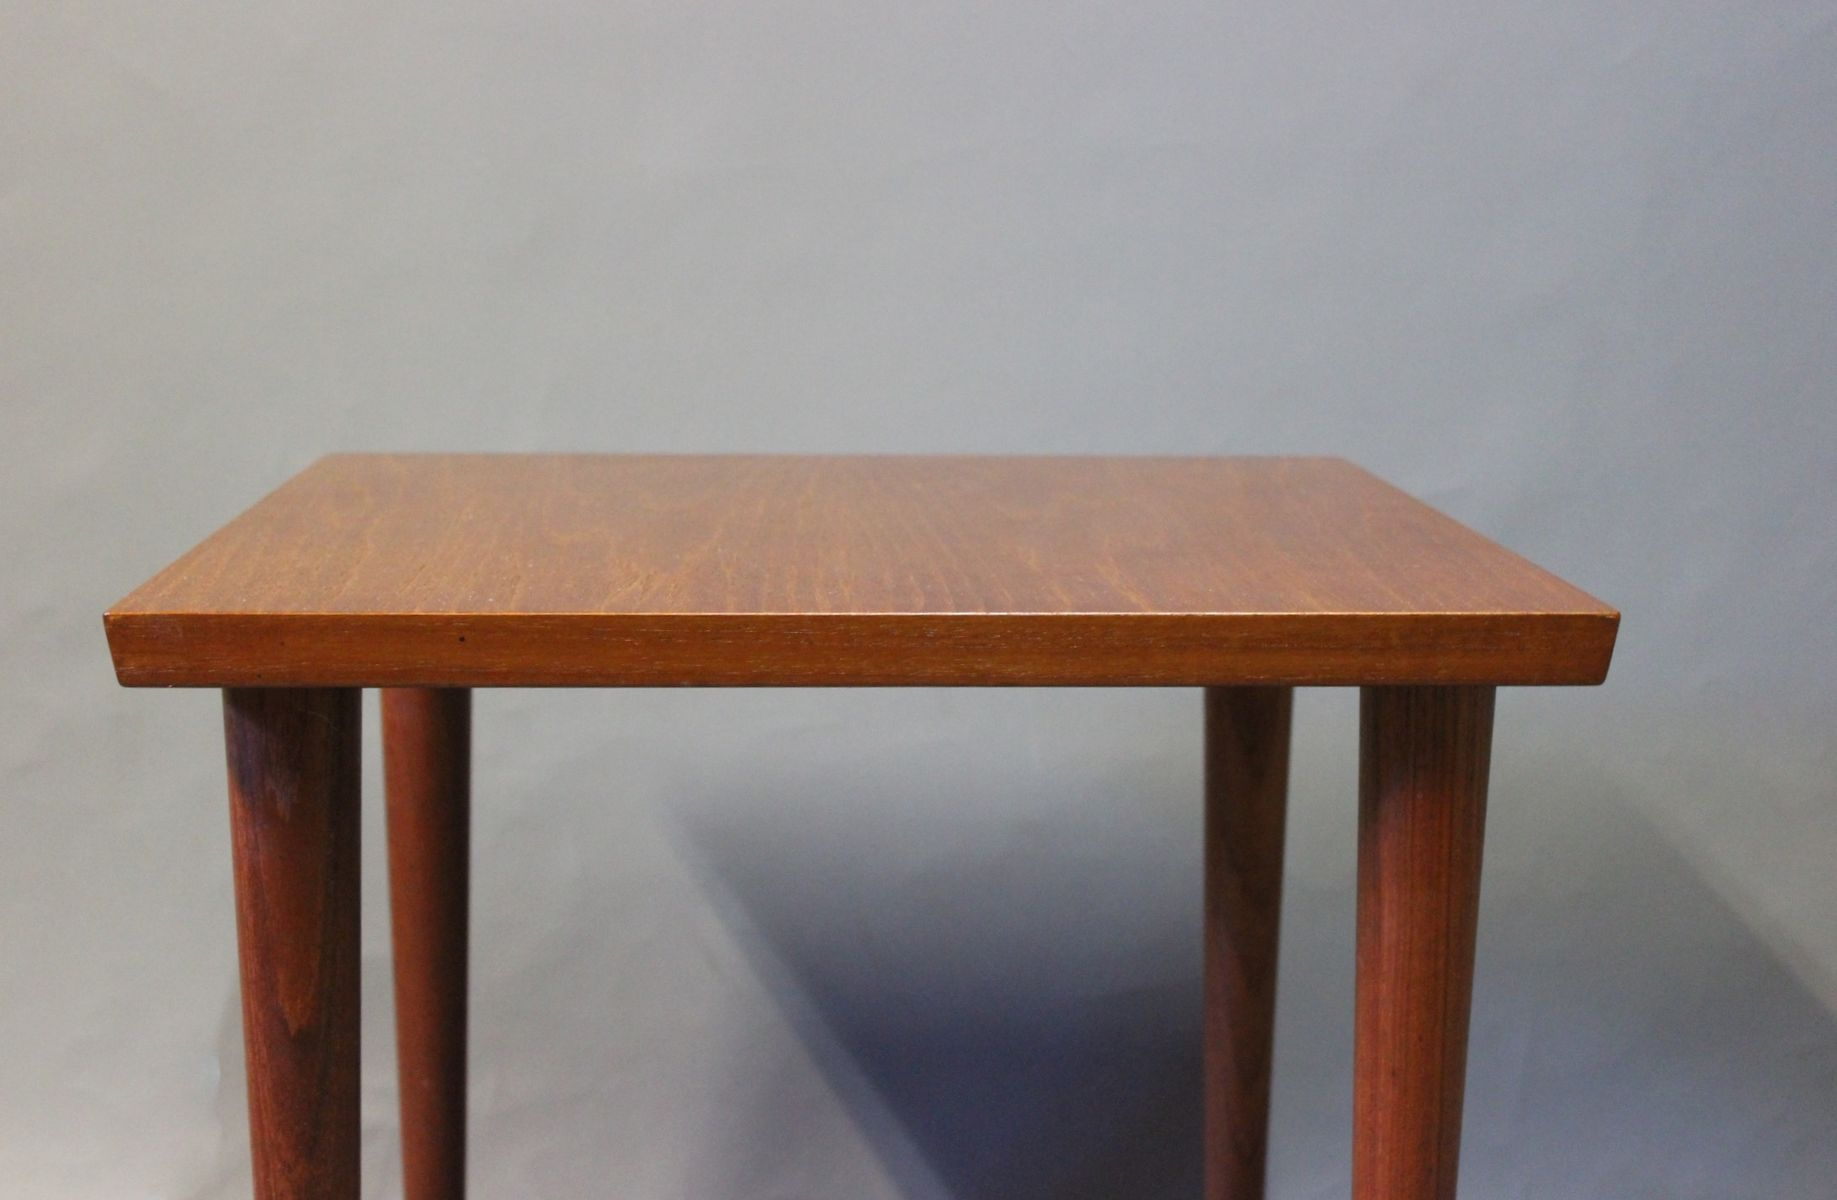 Small Side Table in Teak by Finn Juhl and France & S¸n 1960s for